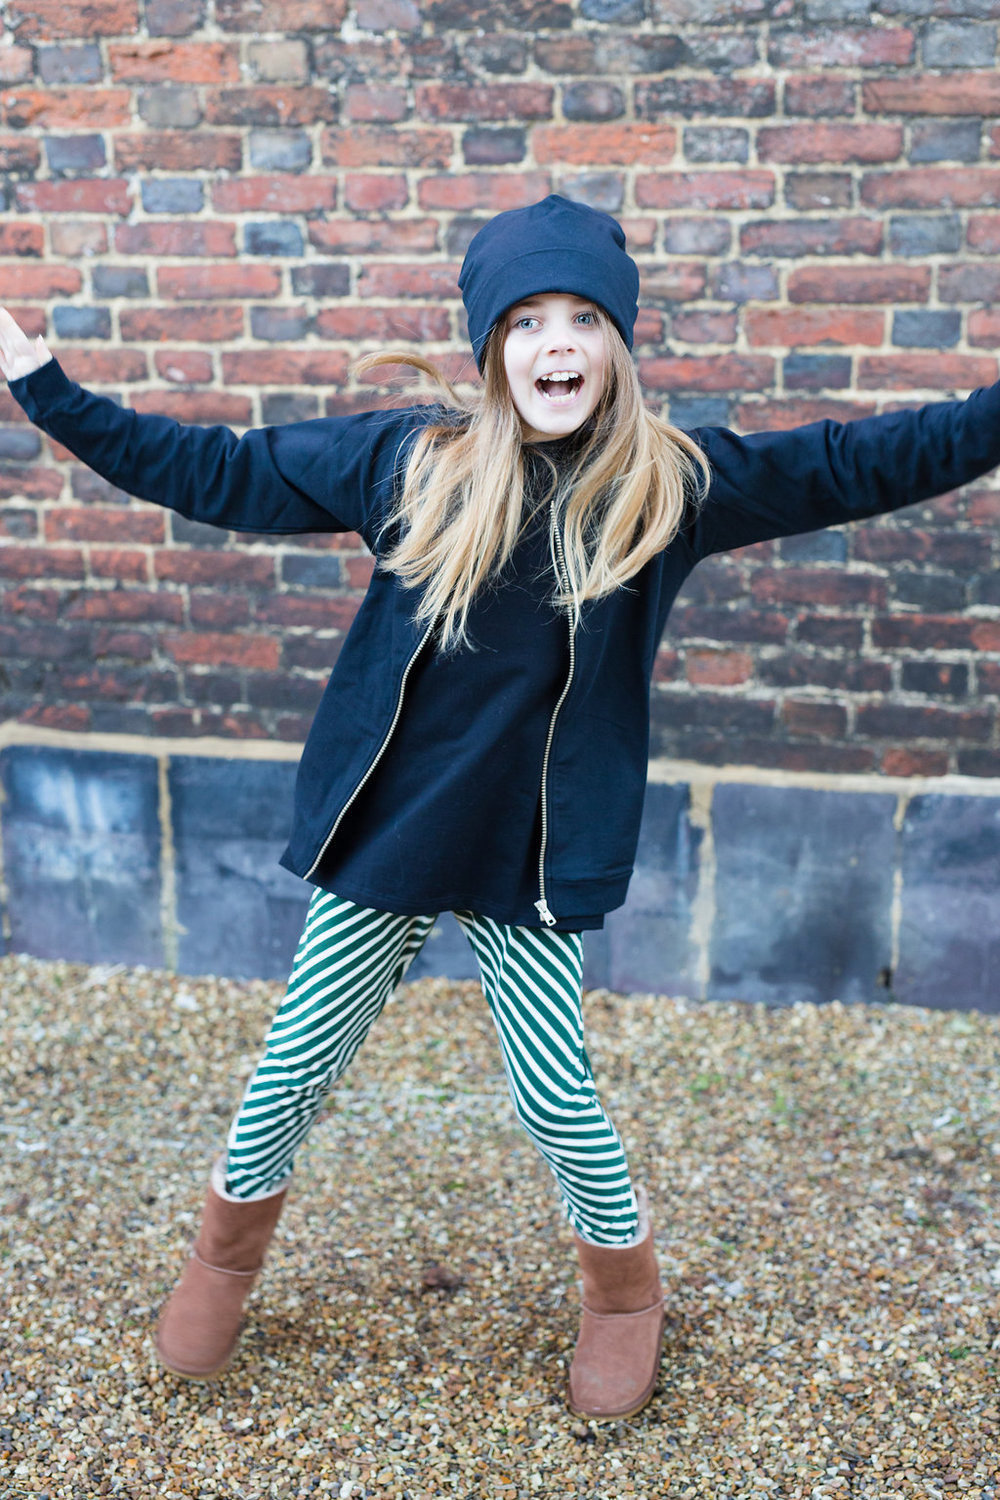 Papu kids cool unisex clothing